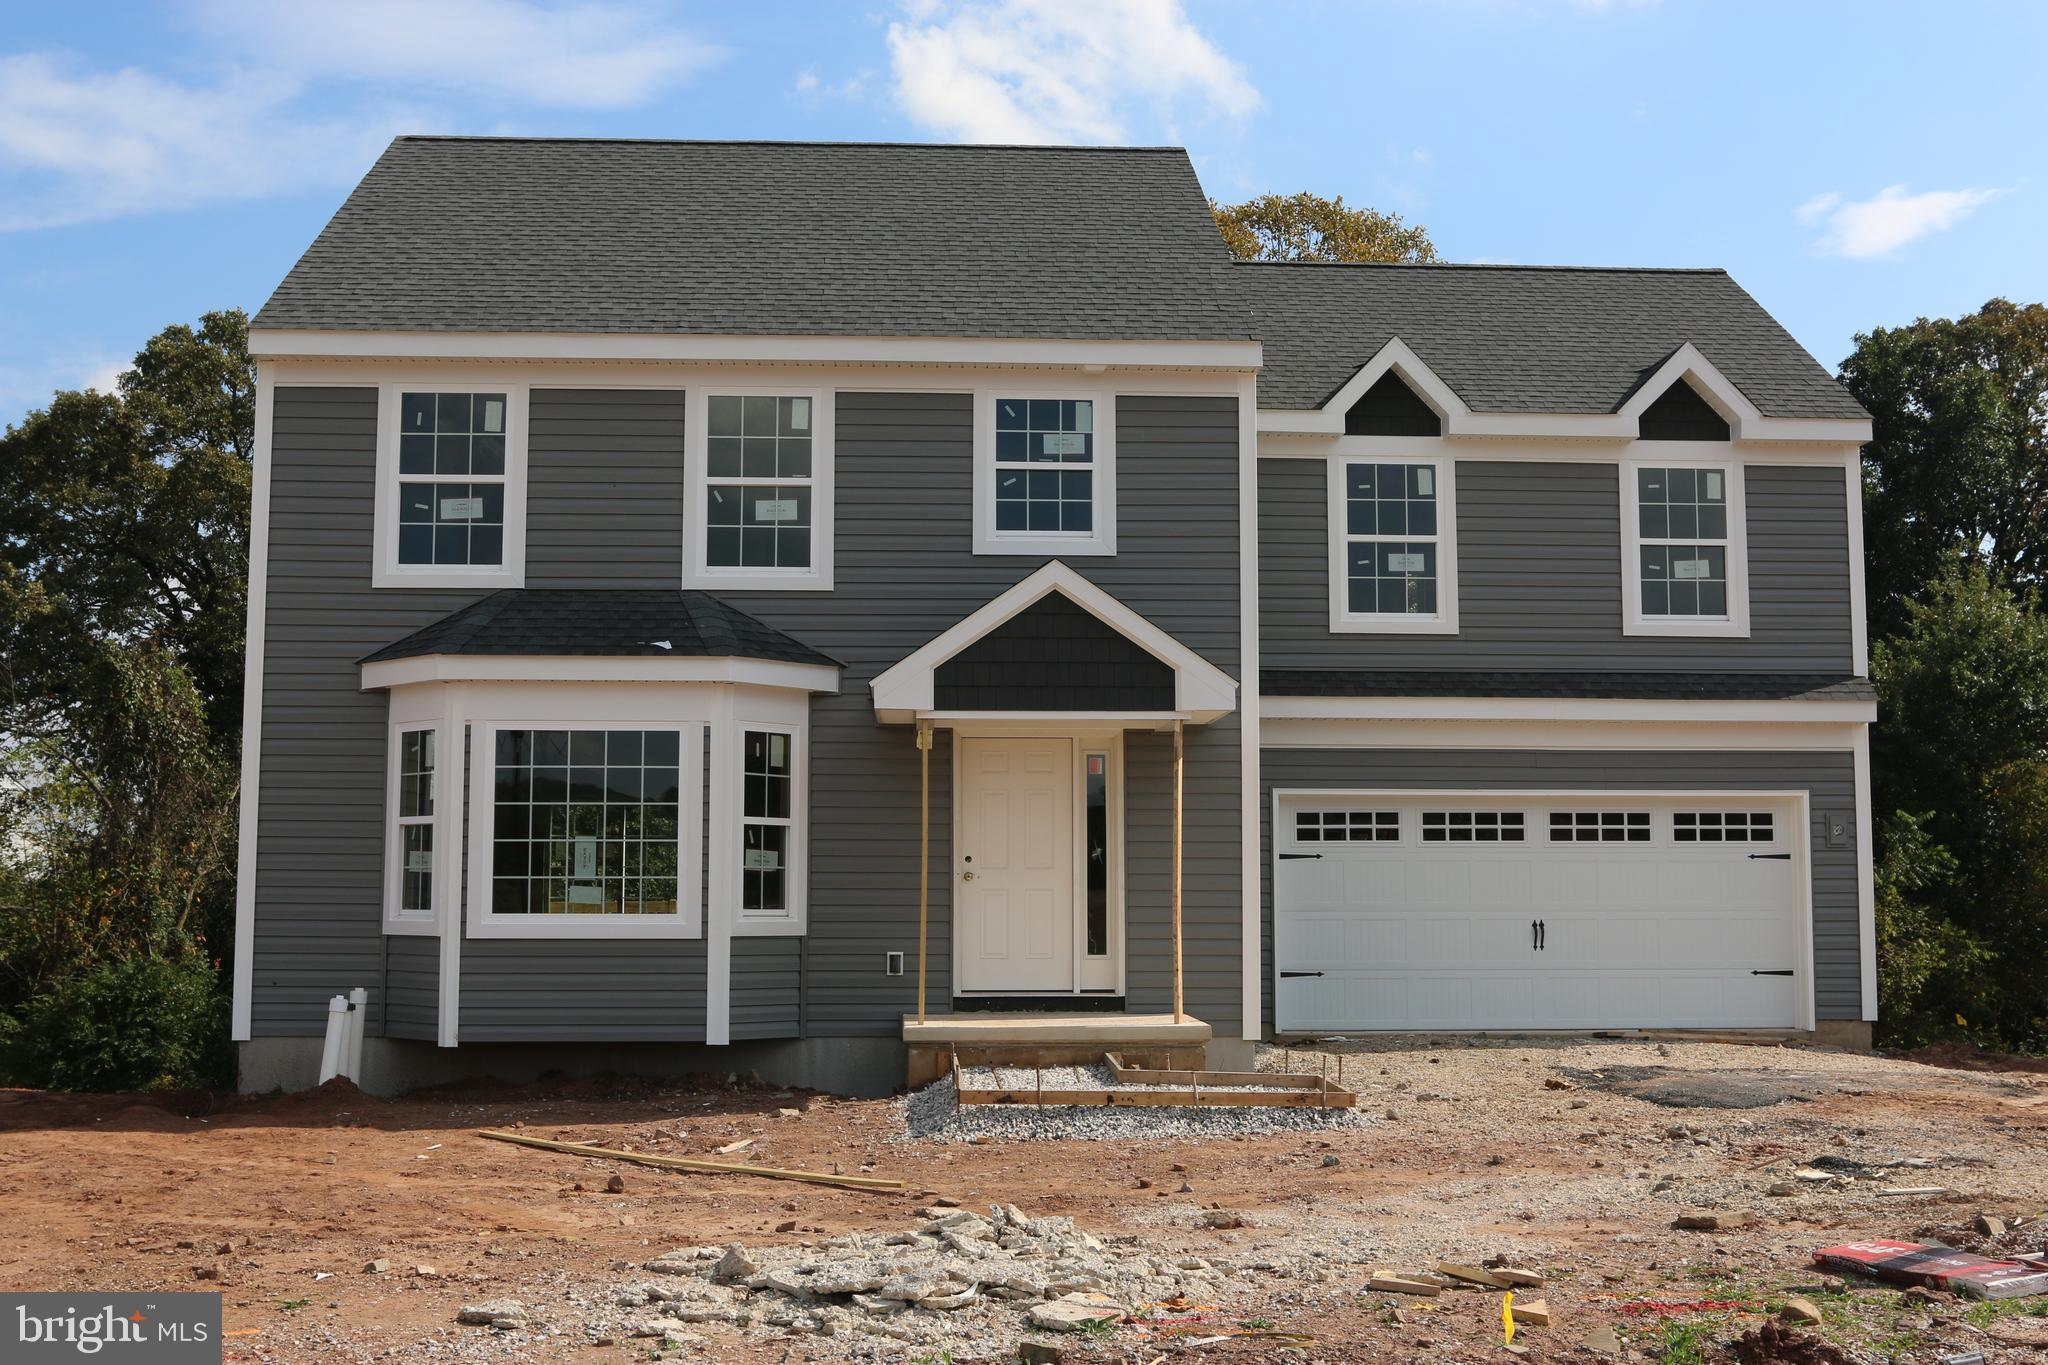 4 BR, 2.5 BA Ellington Model home, featuring stainless appliances, crown molding on kitchen cabinets, built-in bench in primary bedroom, 2nd floor laundry